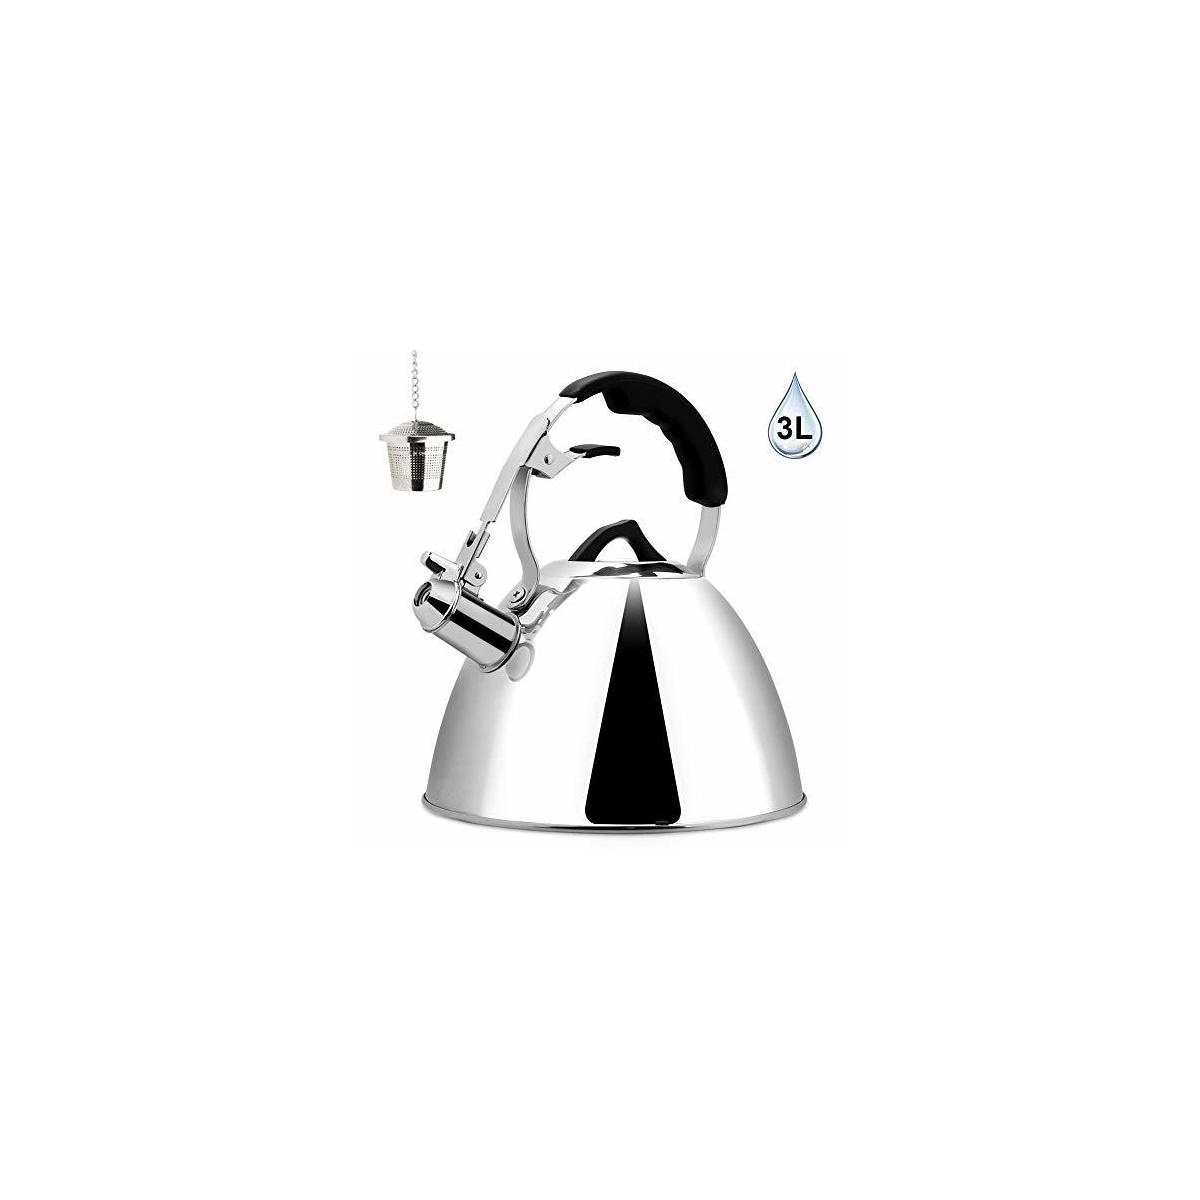 Secura Tea Kettle 3.2 Quart Tea Pot, Stainless Steel Hot Water Kettle Whistling with Mirror Finish, Silicone Handle, Impact-bonded Technology, Tea Infuser for Stovetops